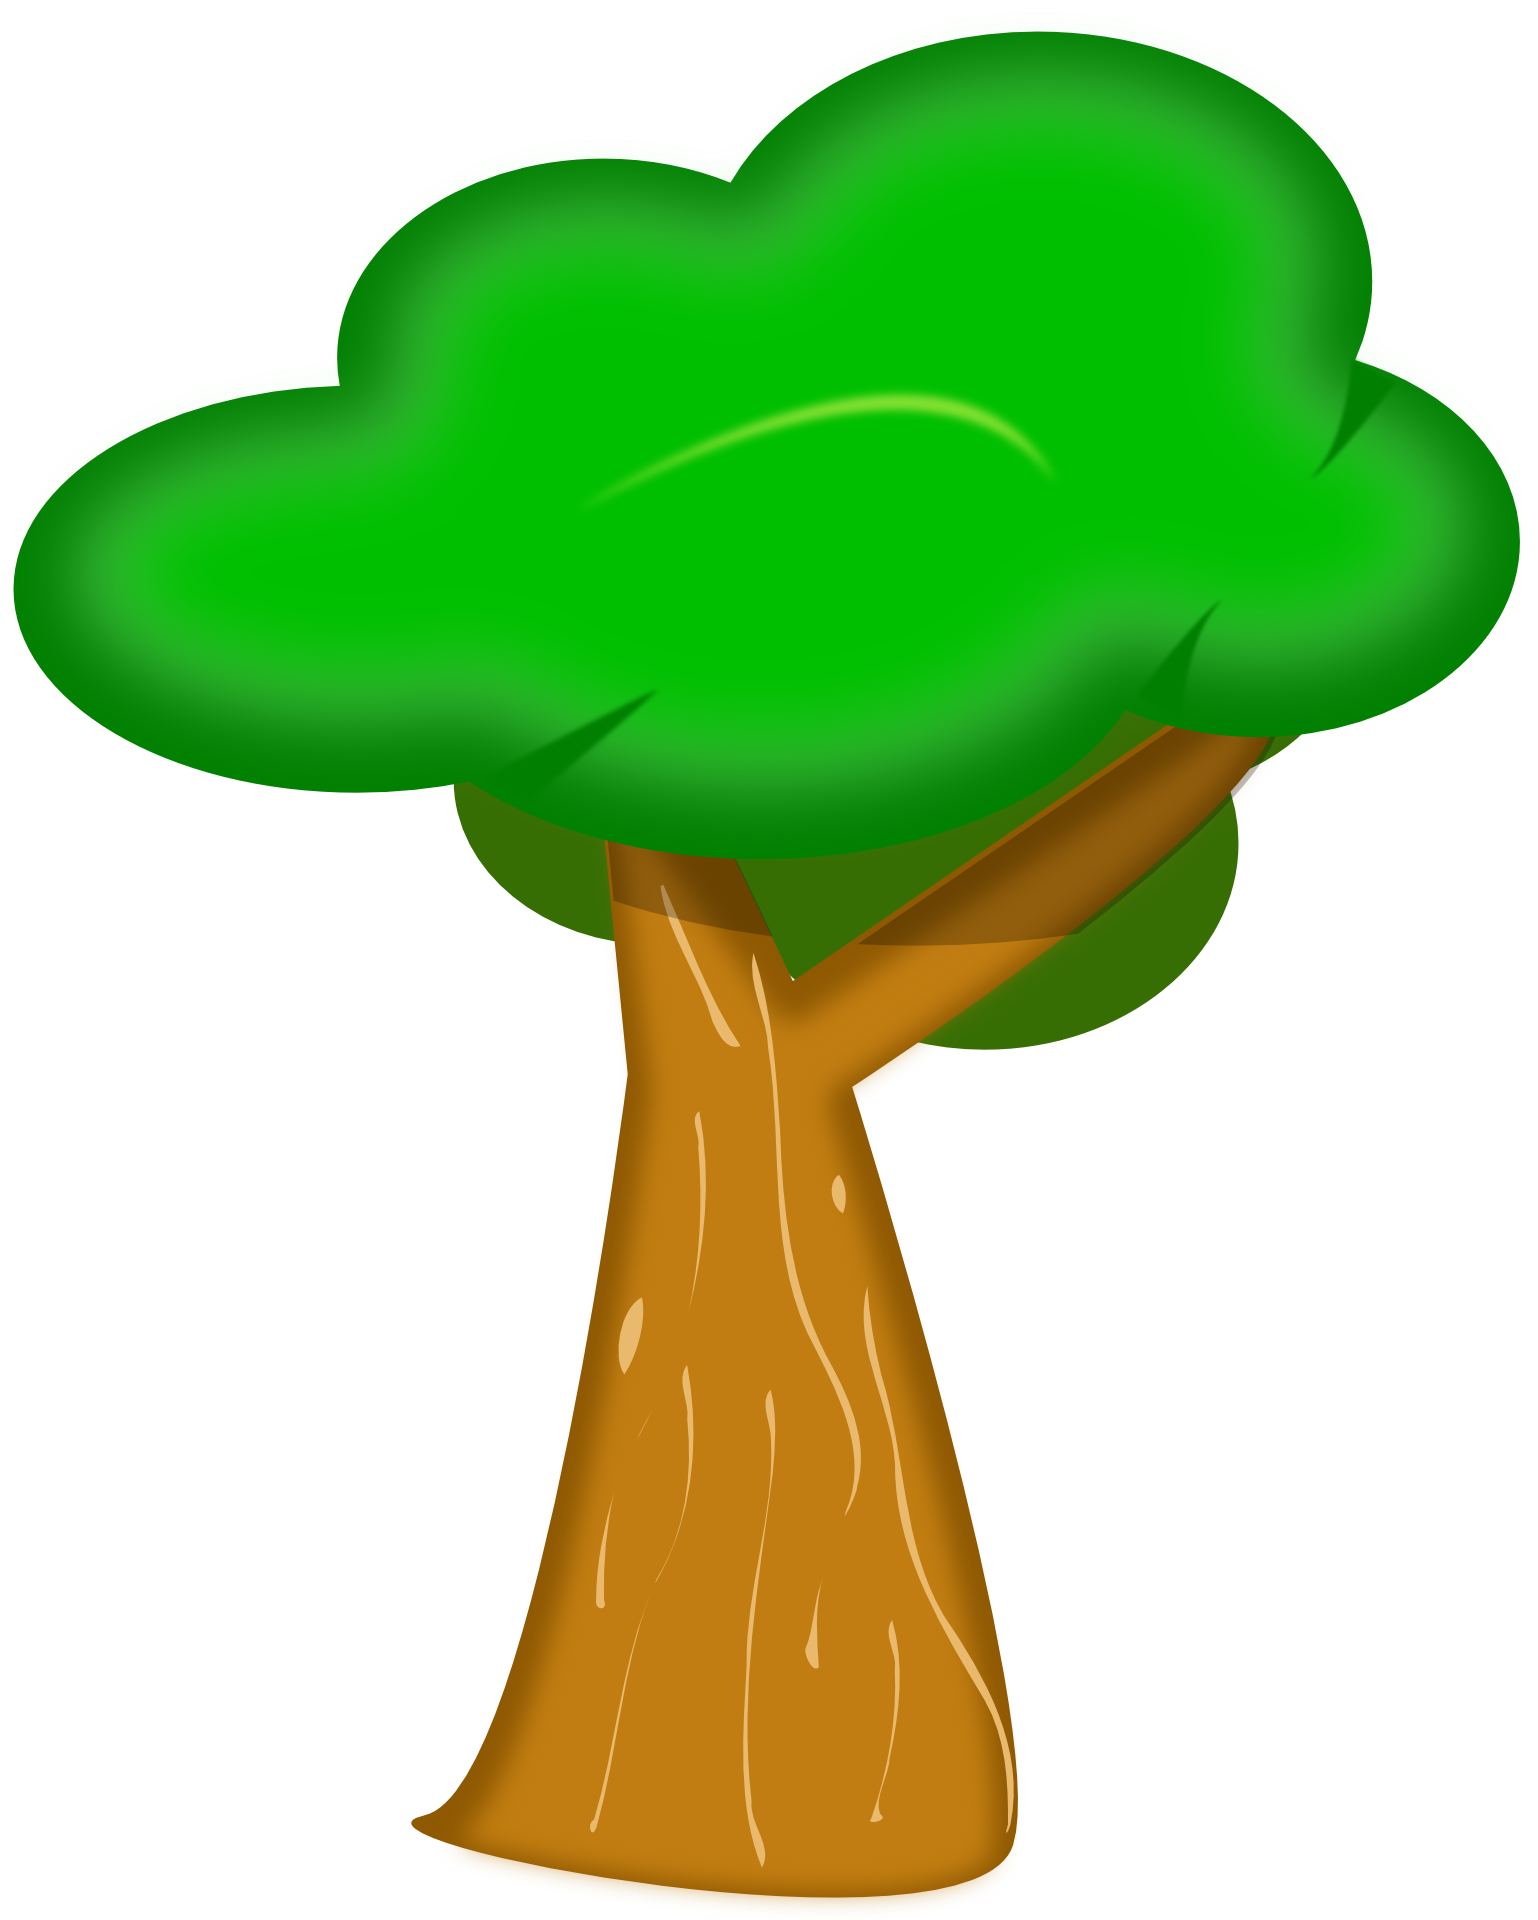 Drawing Of A Cartoon Tree With Brown Bark And Green Foliage Free Image